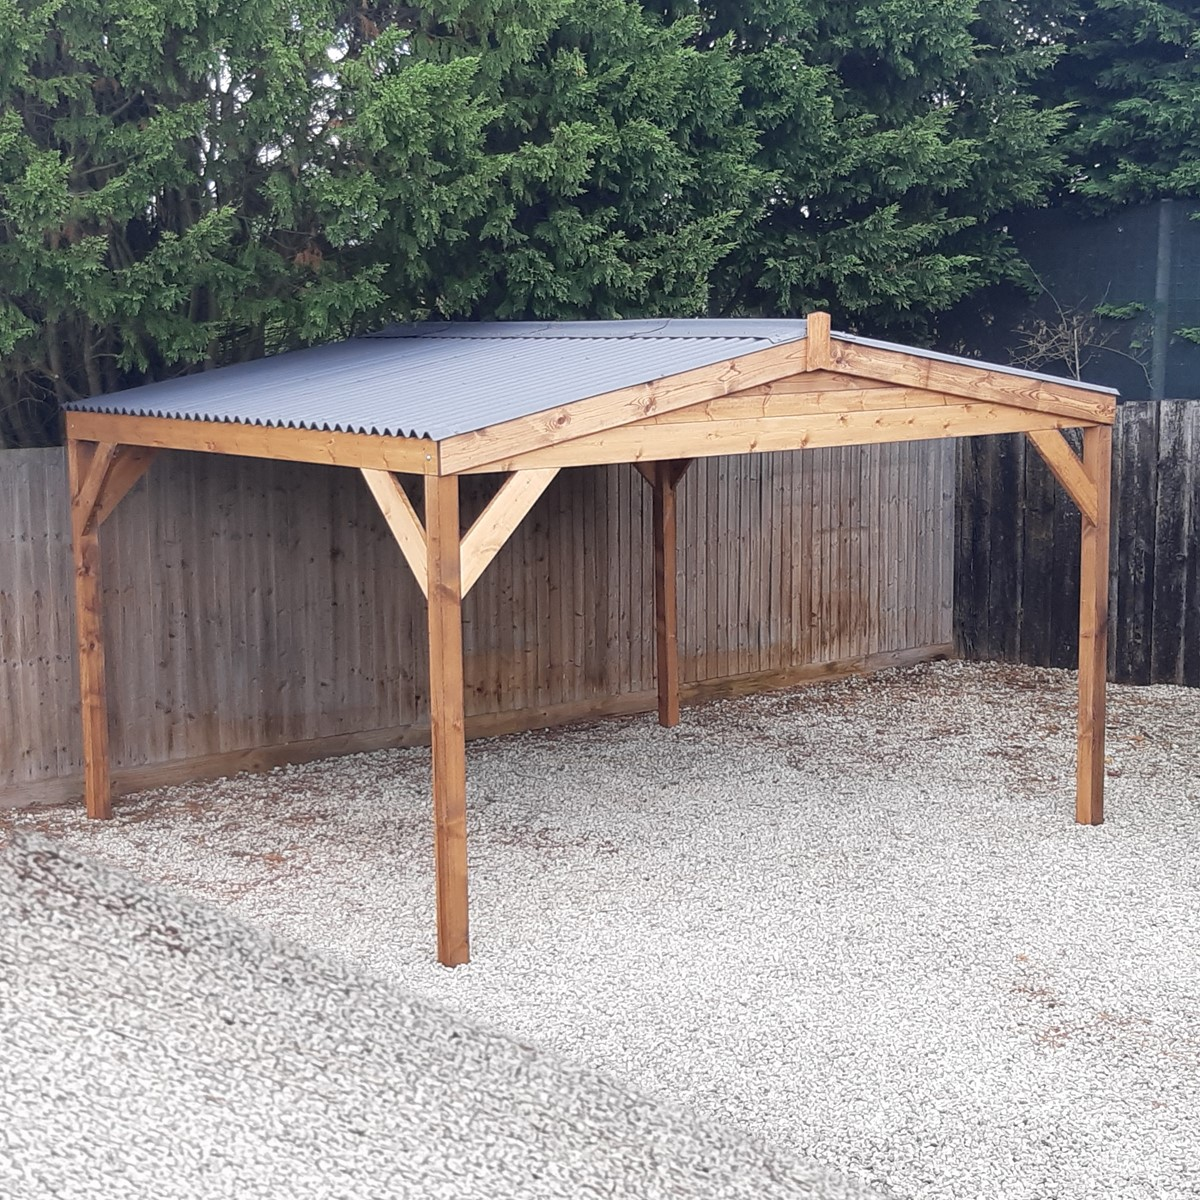 A rectangular wooden gazebo with grey roof